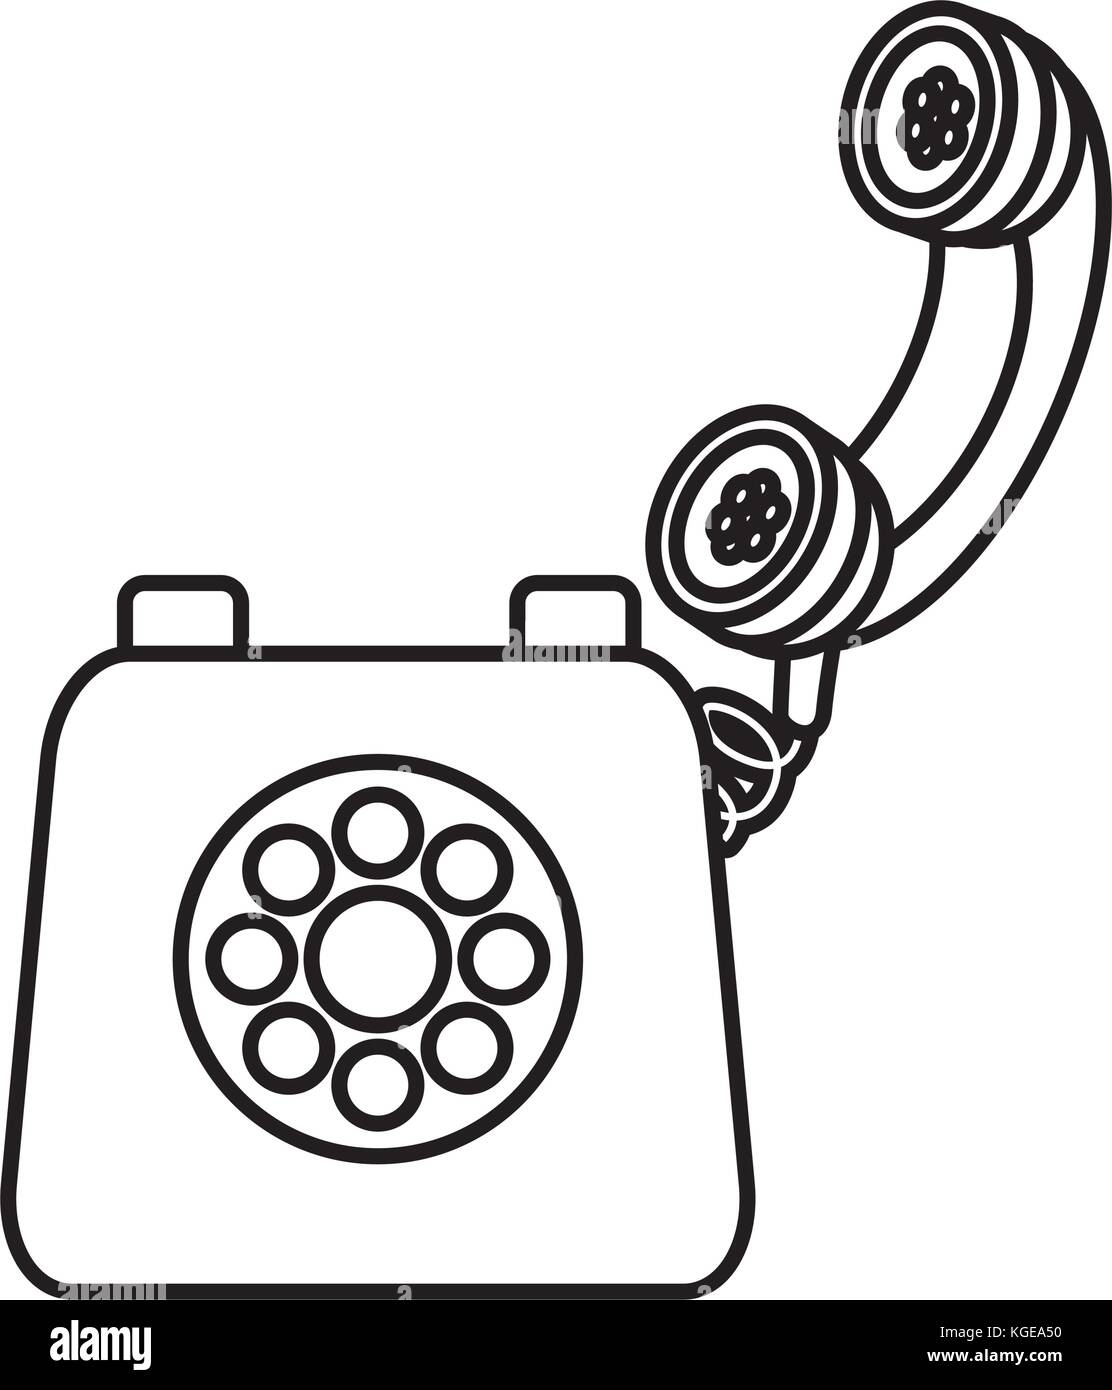 hight resolution of old telephone isolated